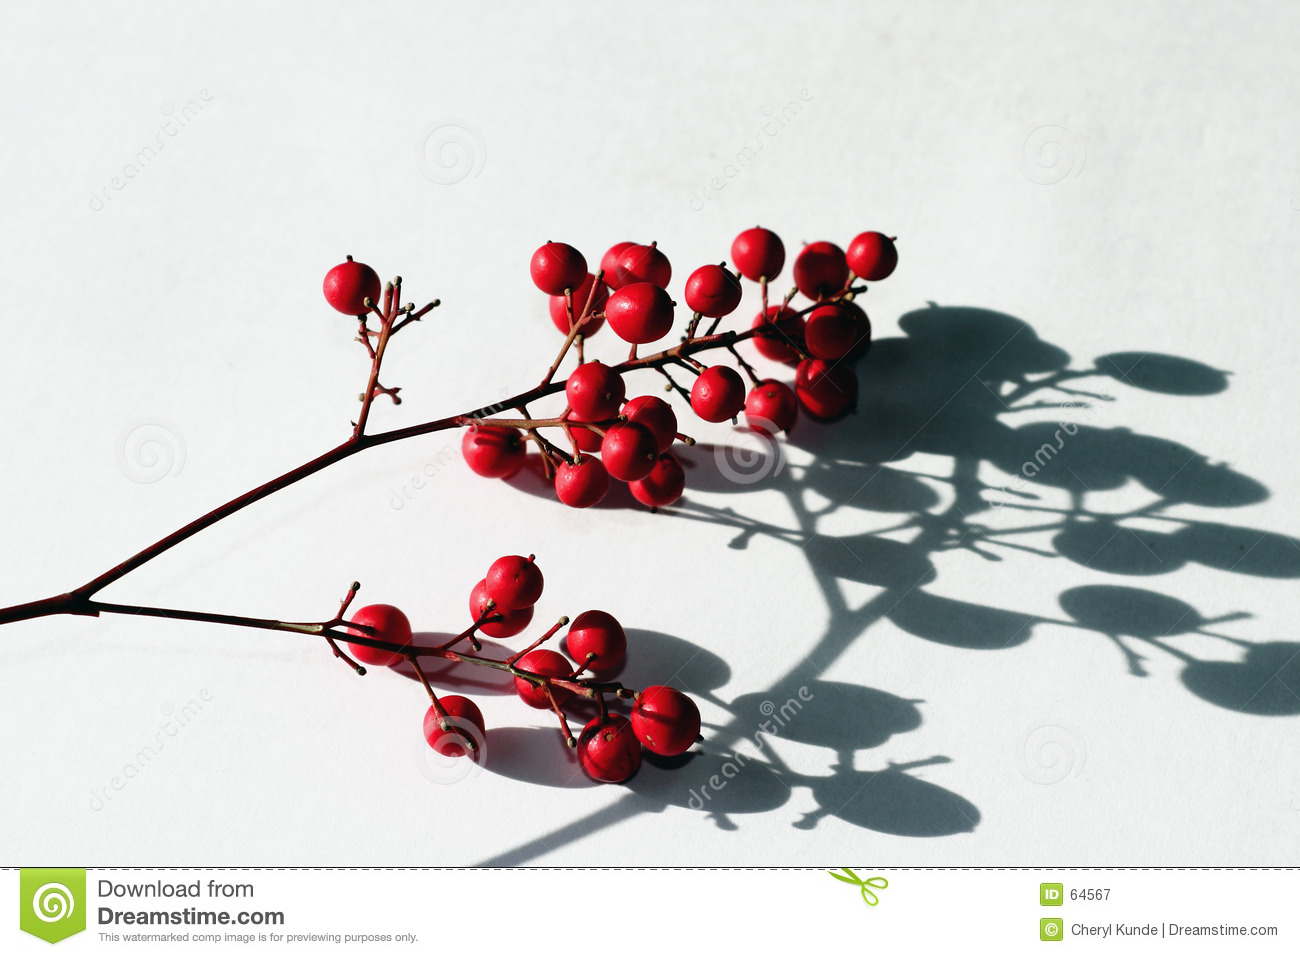 Berries and shadows